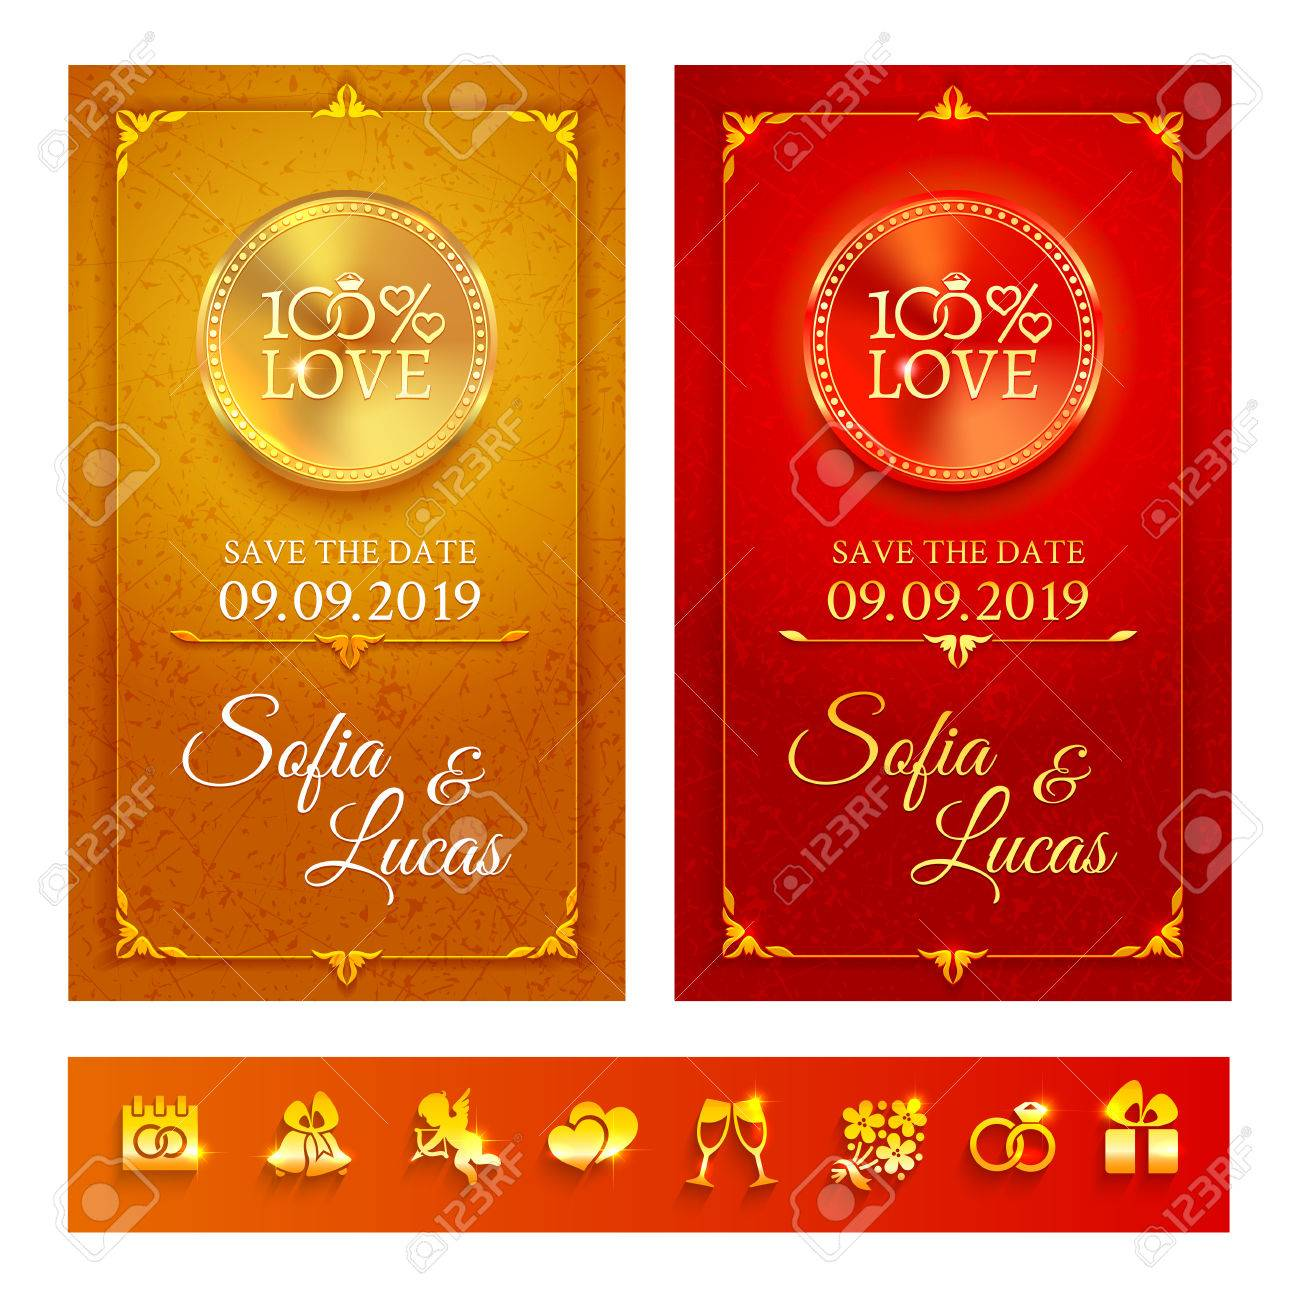 Collection Of Two Bright Gold And Red Wedding Invitation In The ...